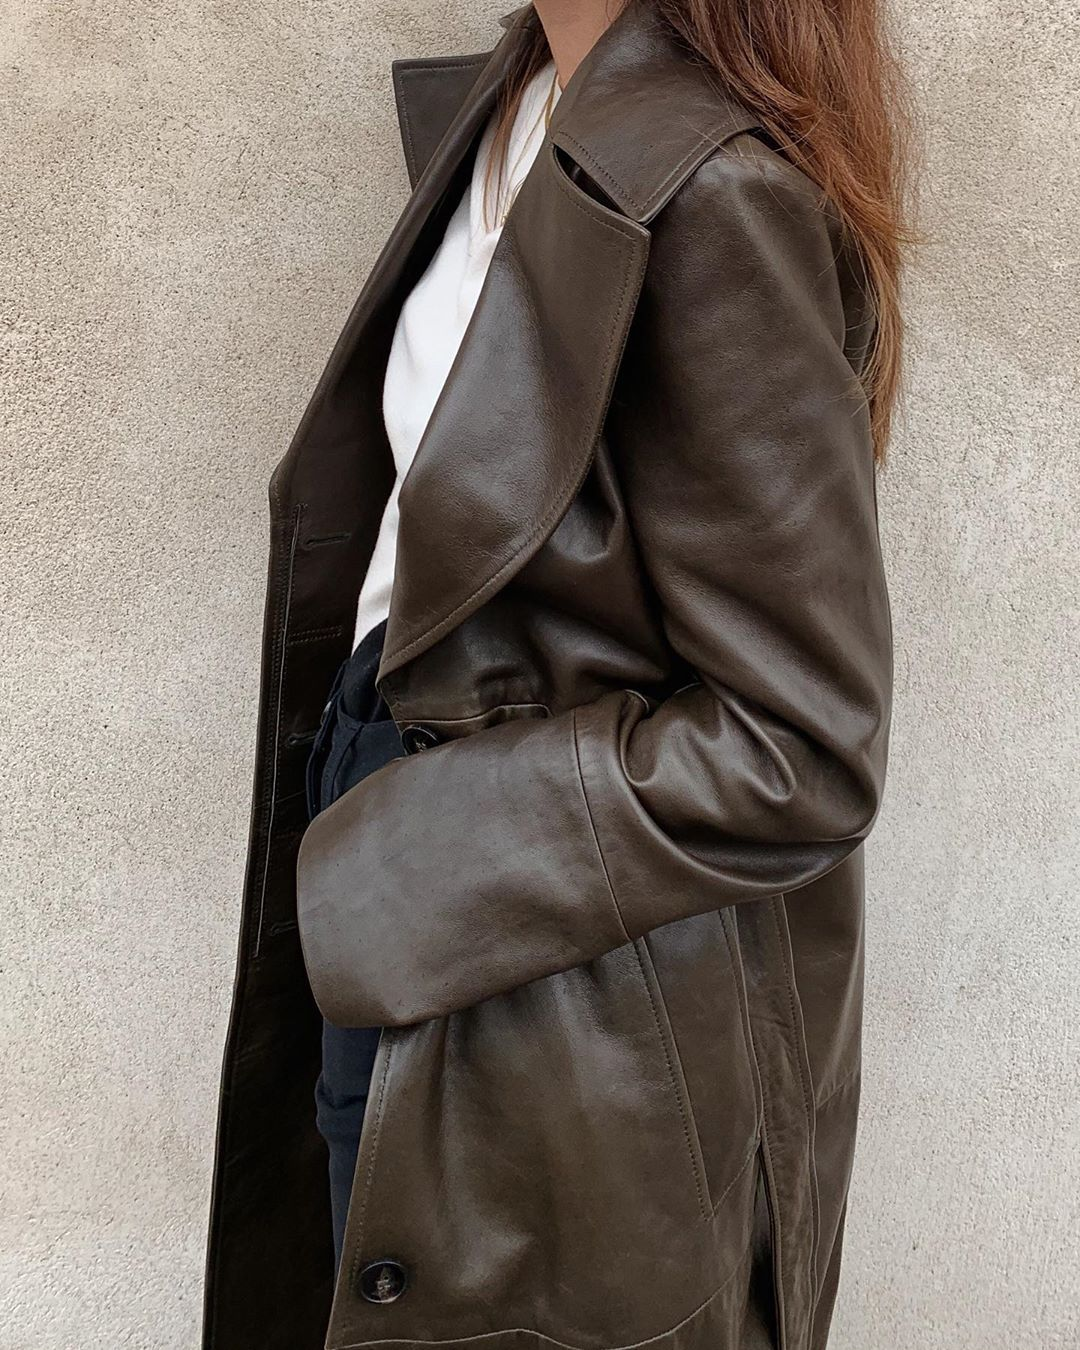 This Founder Wore the Perfect Seasonal Outfit – Leather Trench Coat